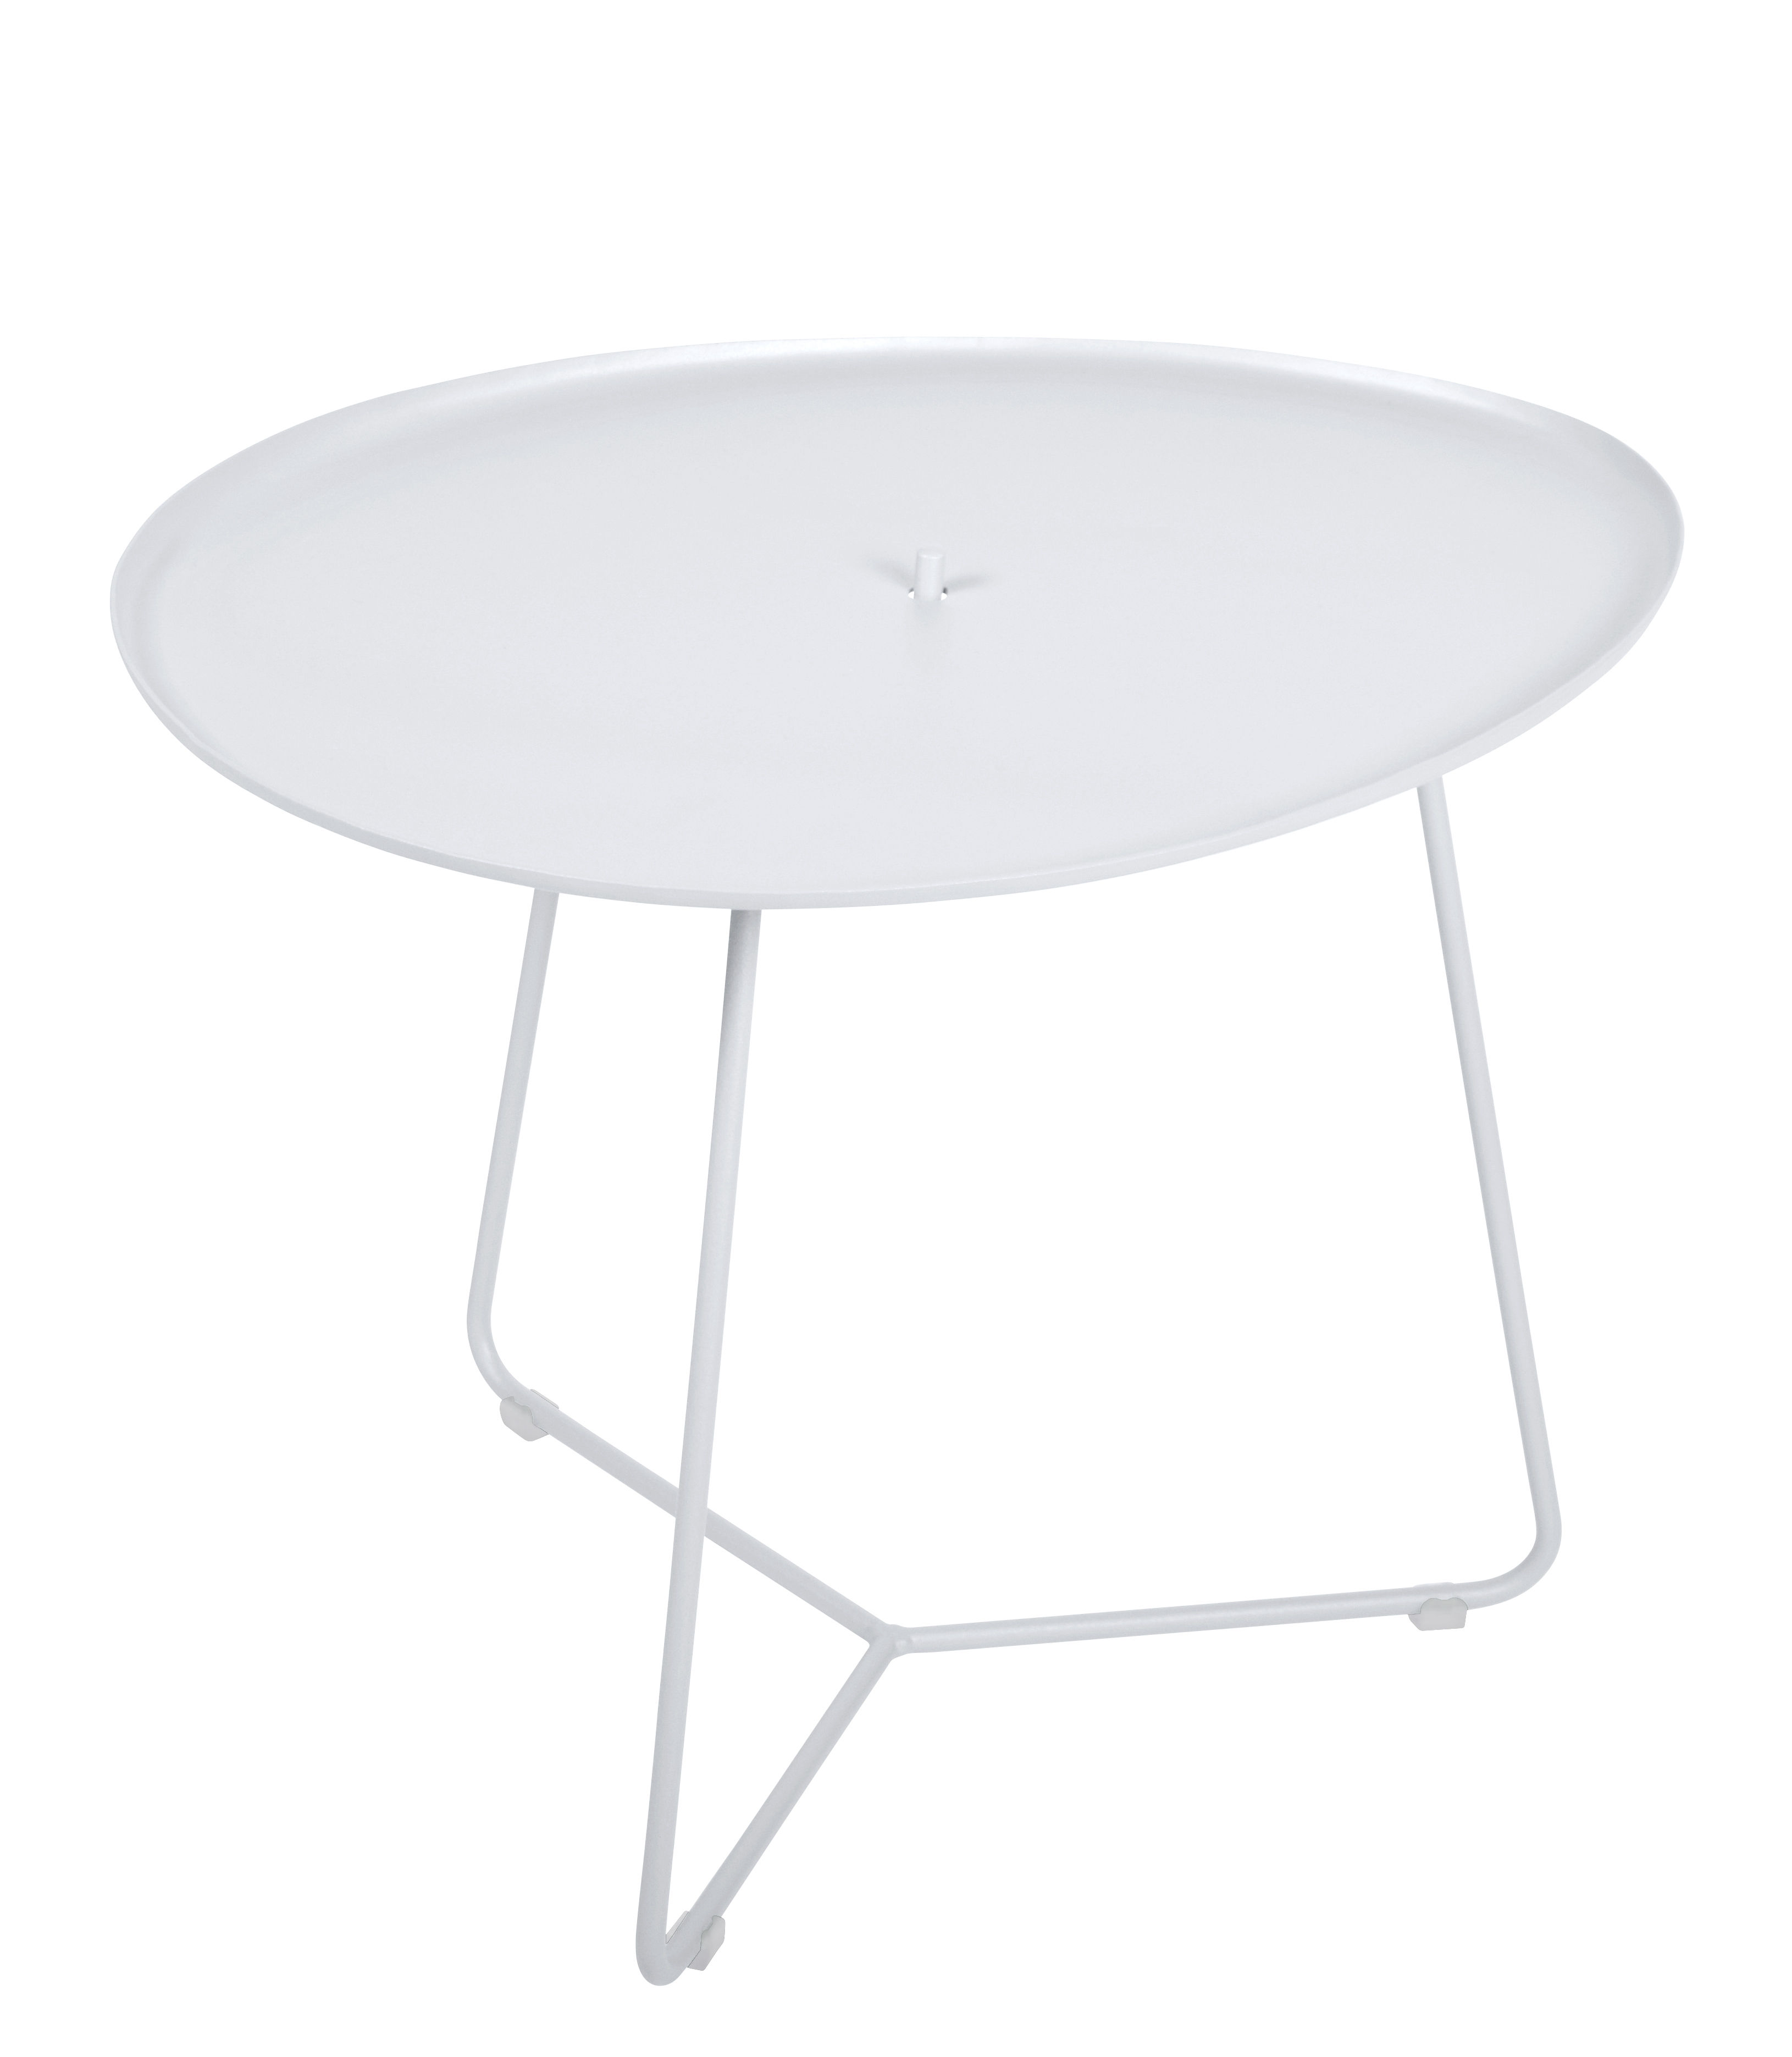 Furniture - Coffee Tables - Cocotte Coffee table - / L 55 x H 43.5 cm - Detachable table top by Fermob - Cotton white - Painted steel